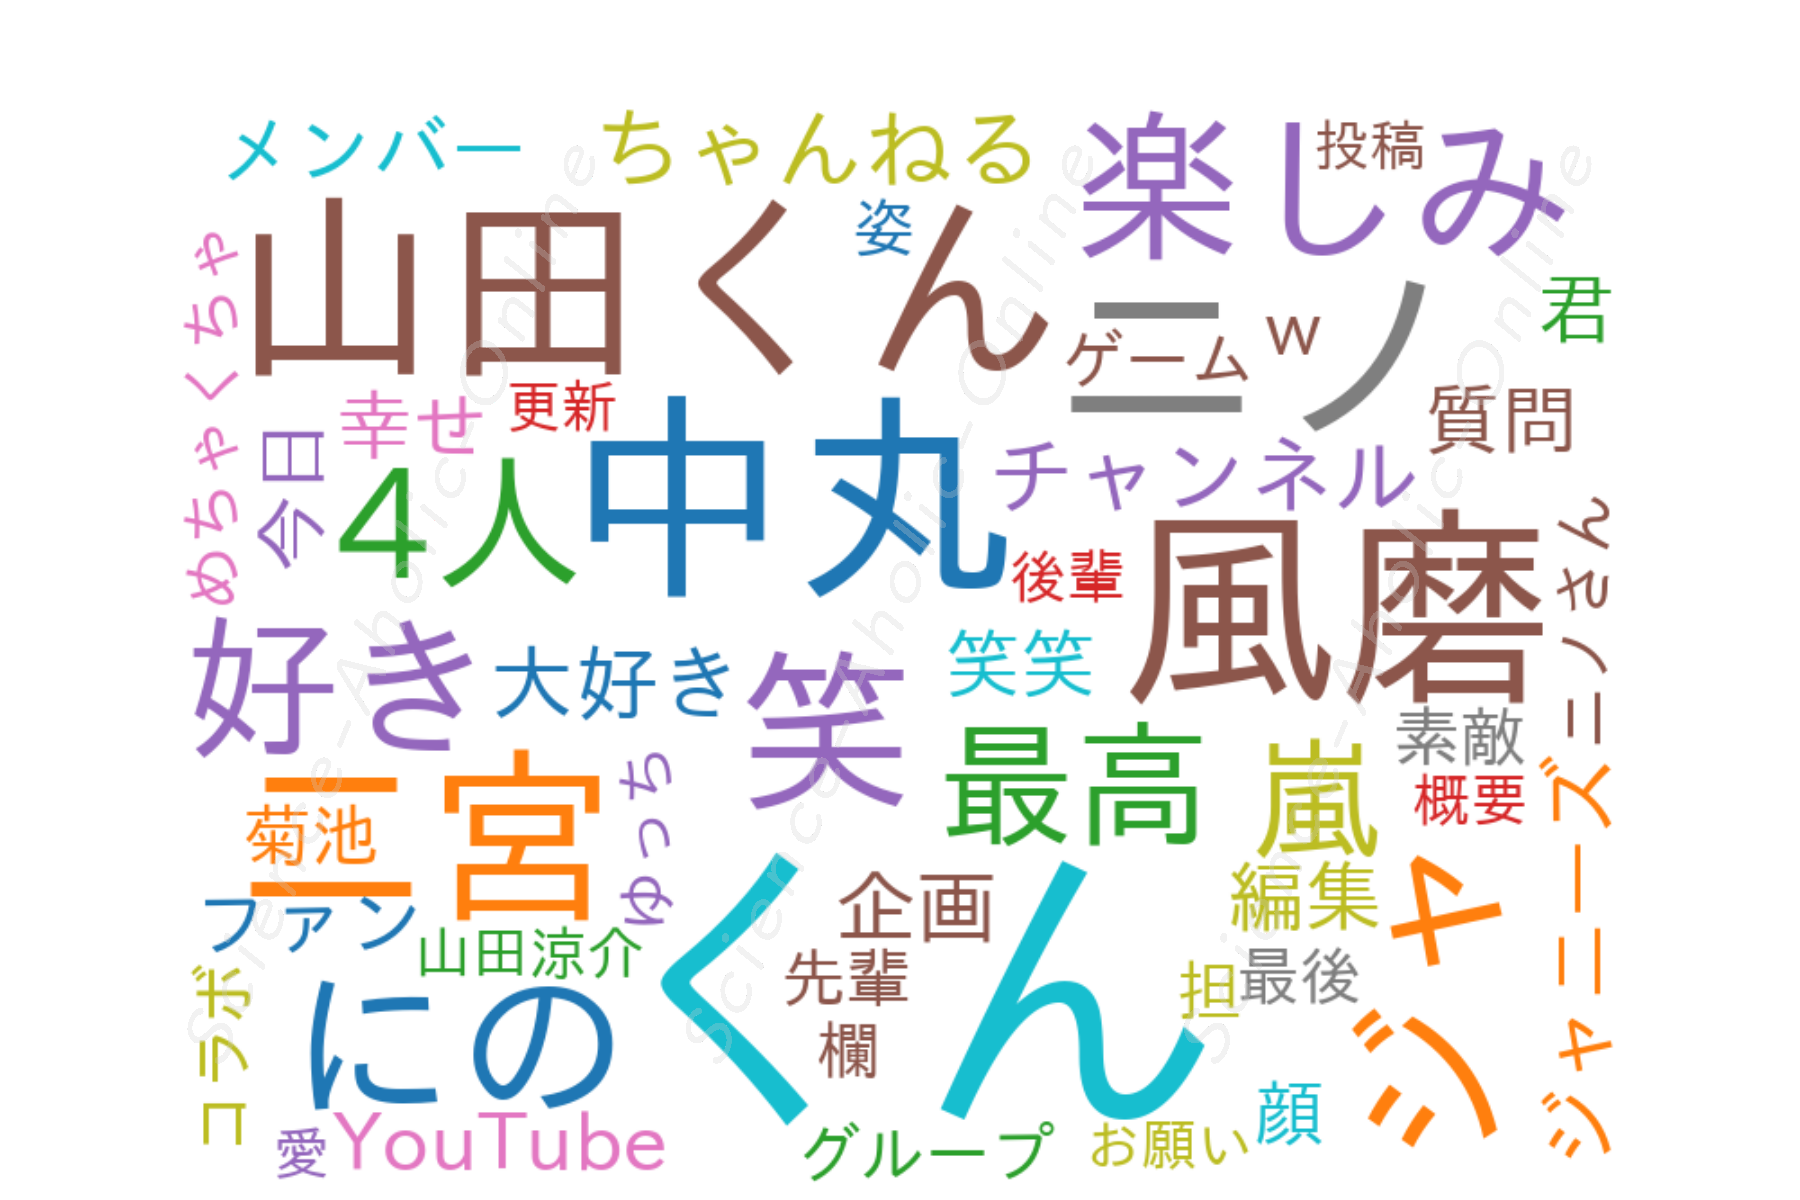 https://science-aholic-online.com/wp-content/uploads/2020/08/wordcloud_ジャにのちゃんねる.png